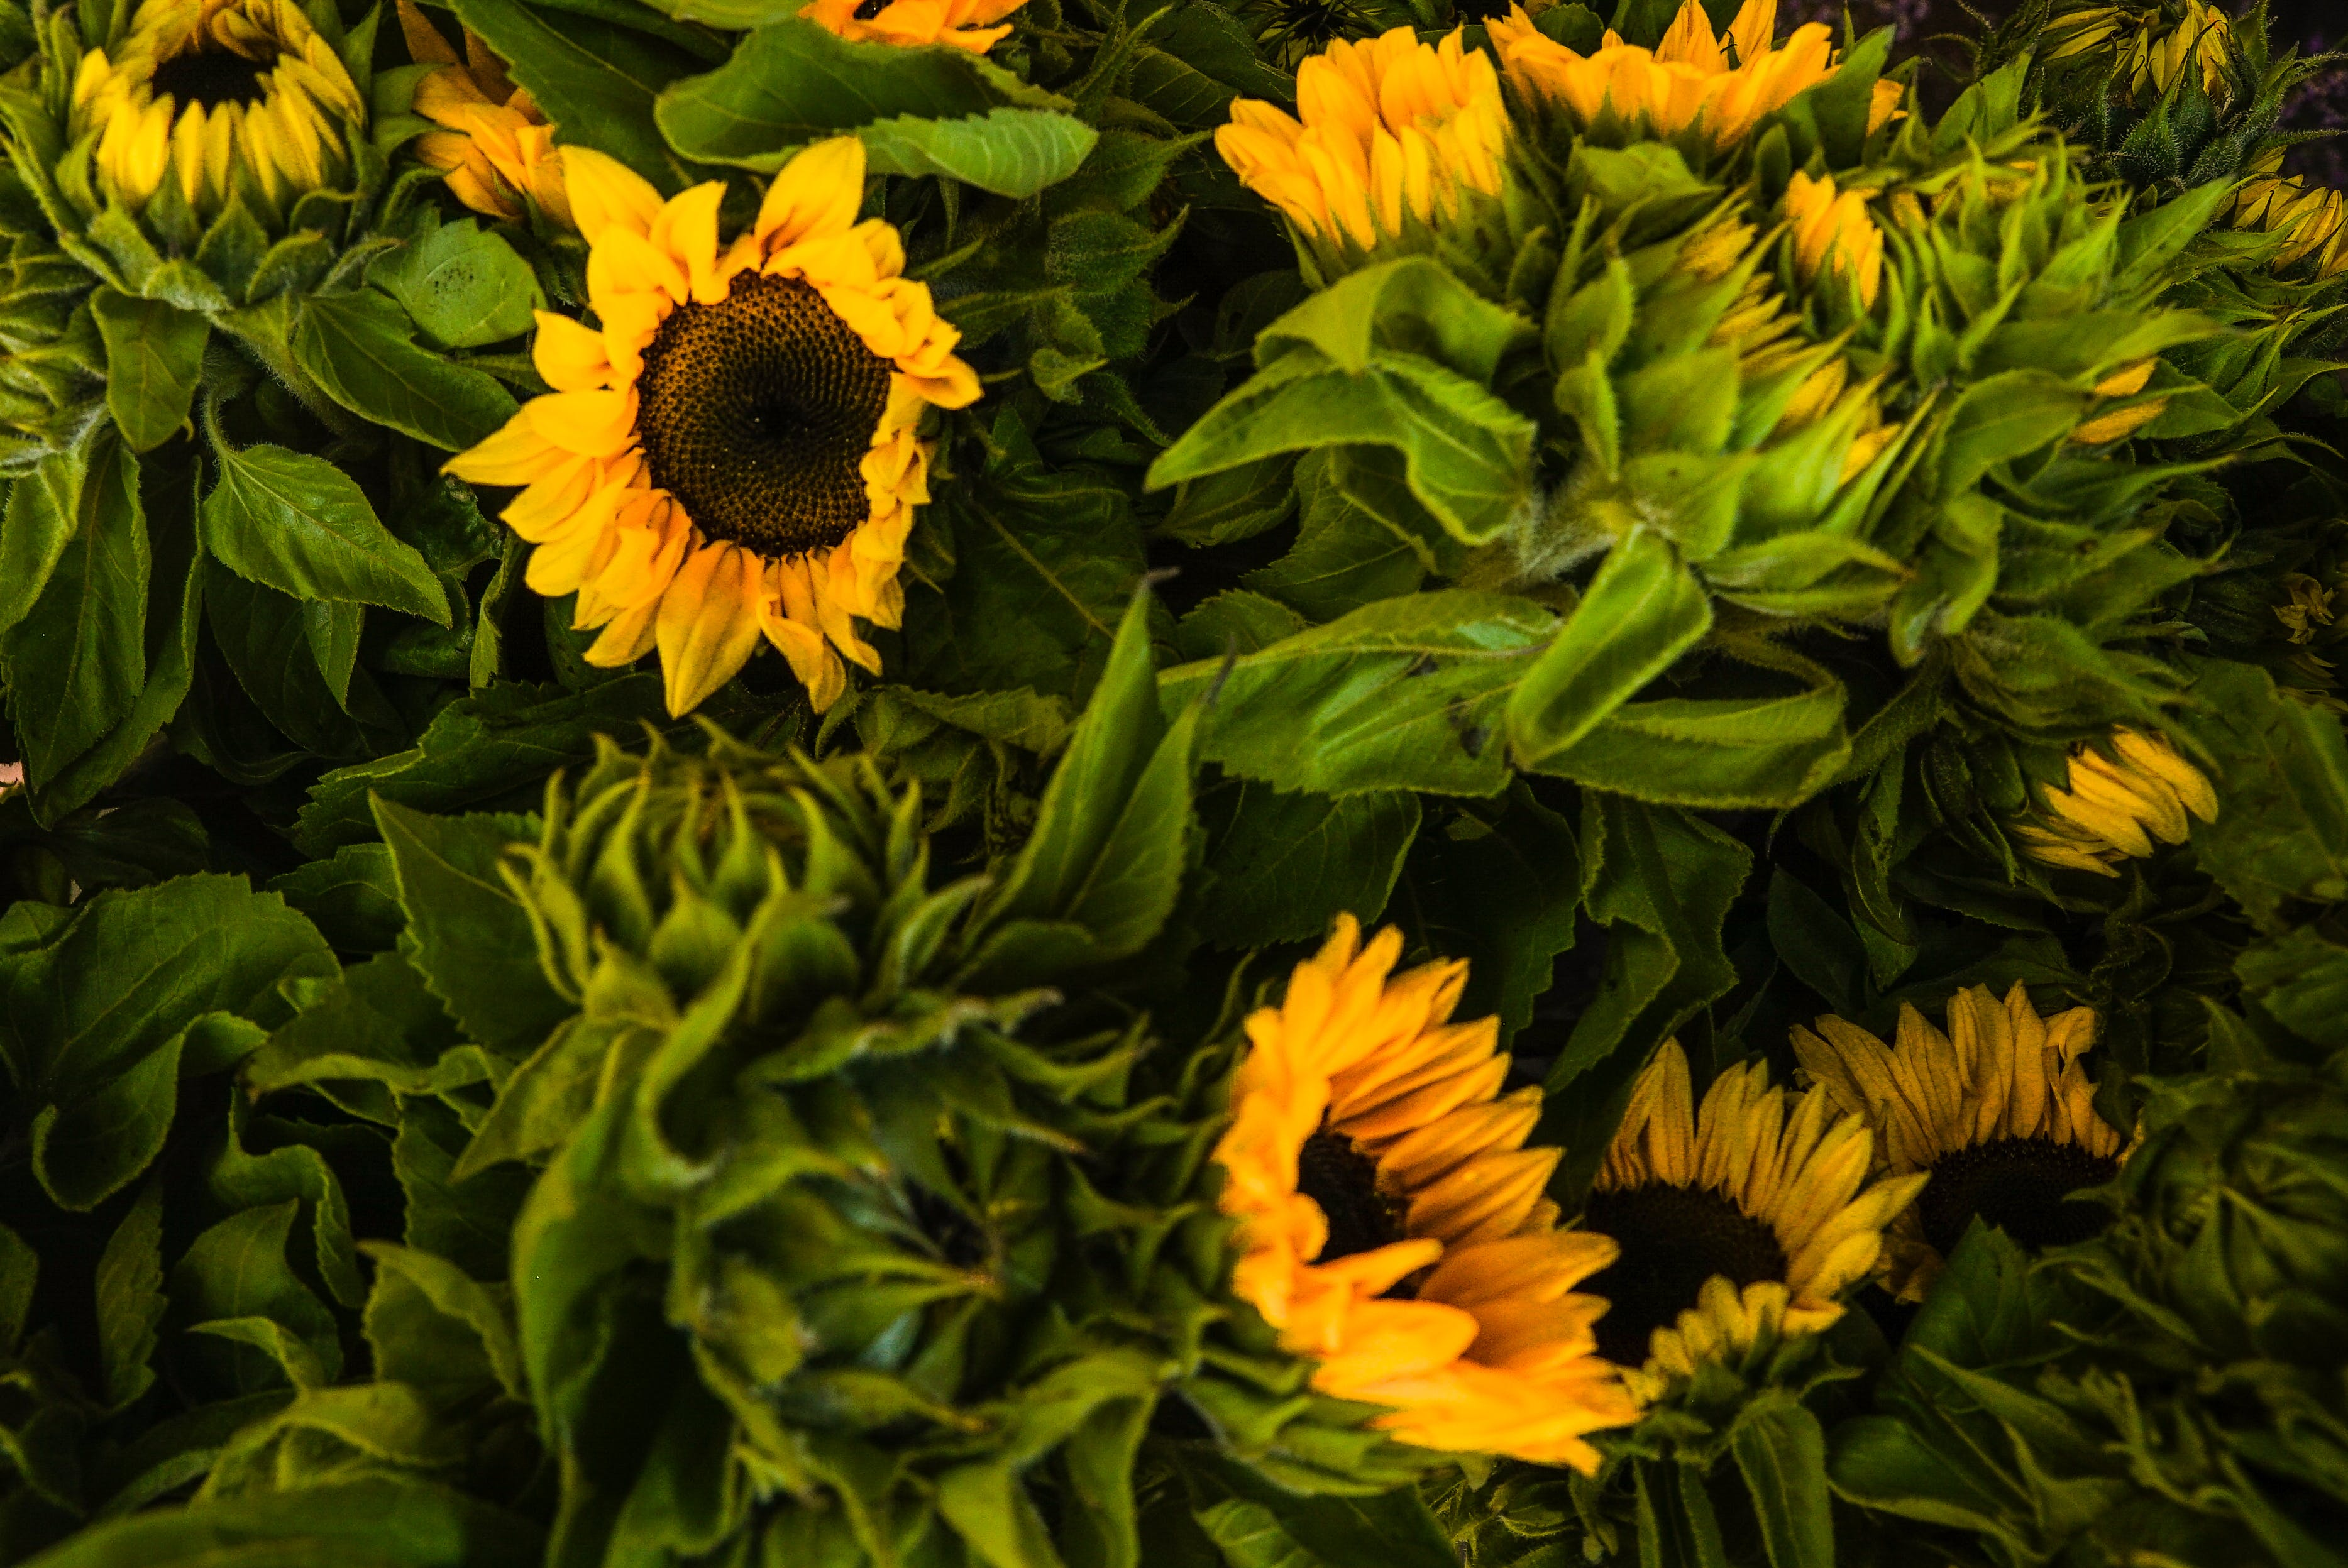 Close-UP Photo of Sunflowers